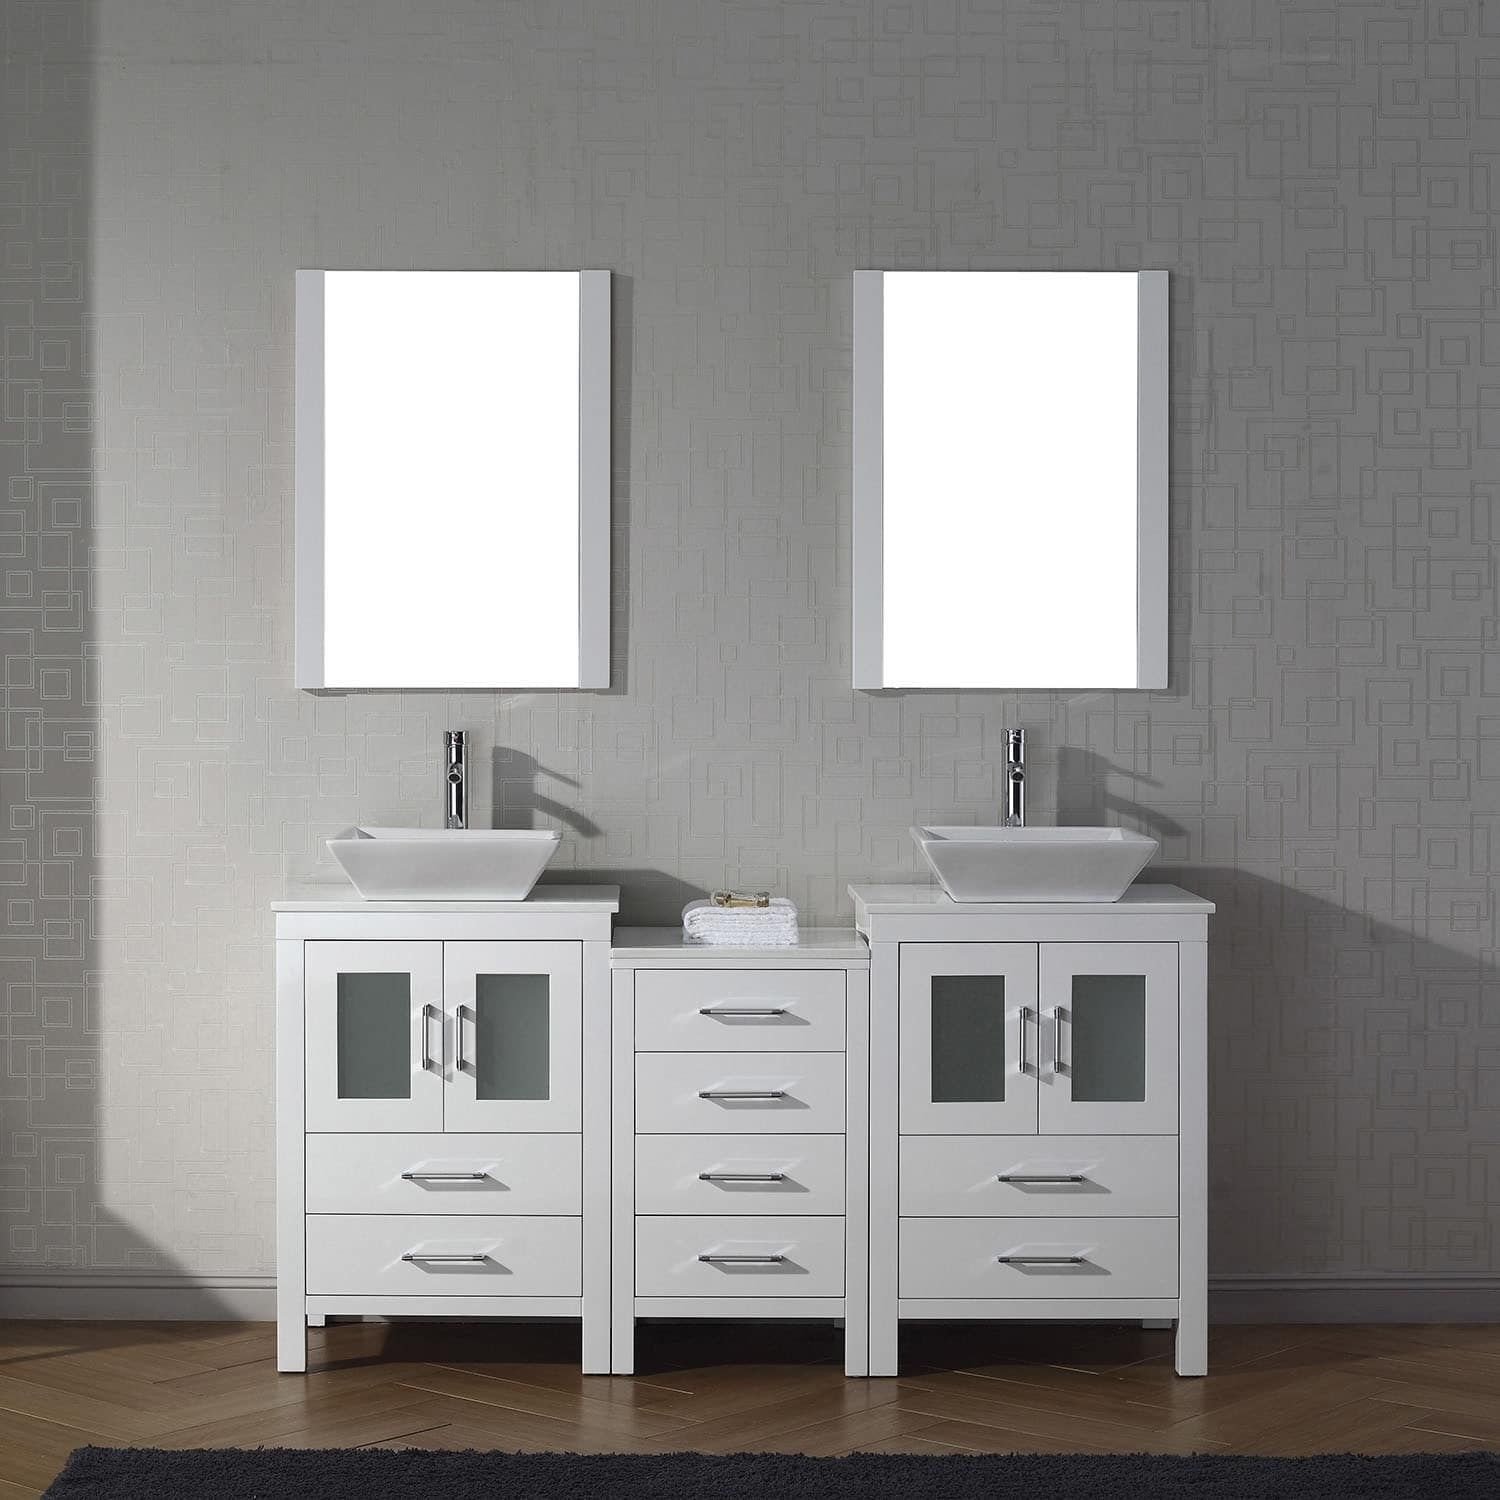 Online Shopping Bedding Furniture Electronics Jewelry Clothing More Single Bathroom Vanity Vanity Set Double Sink Vanity